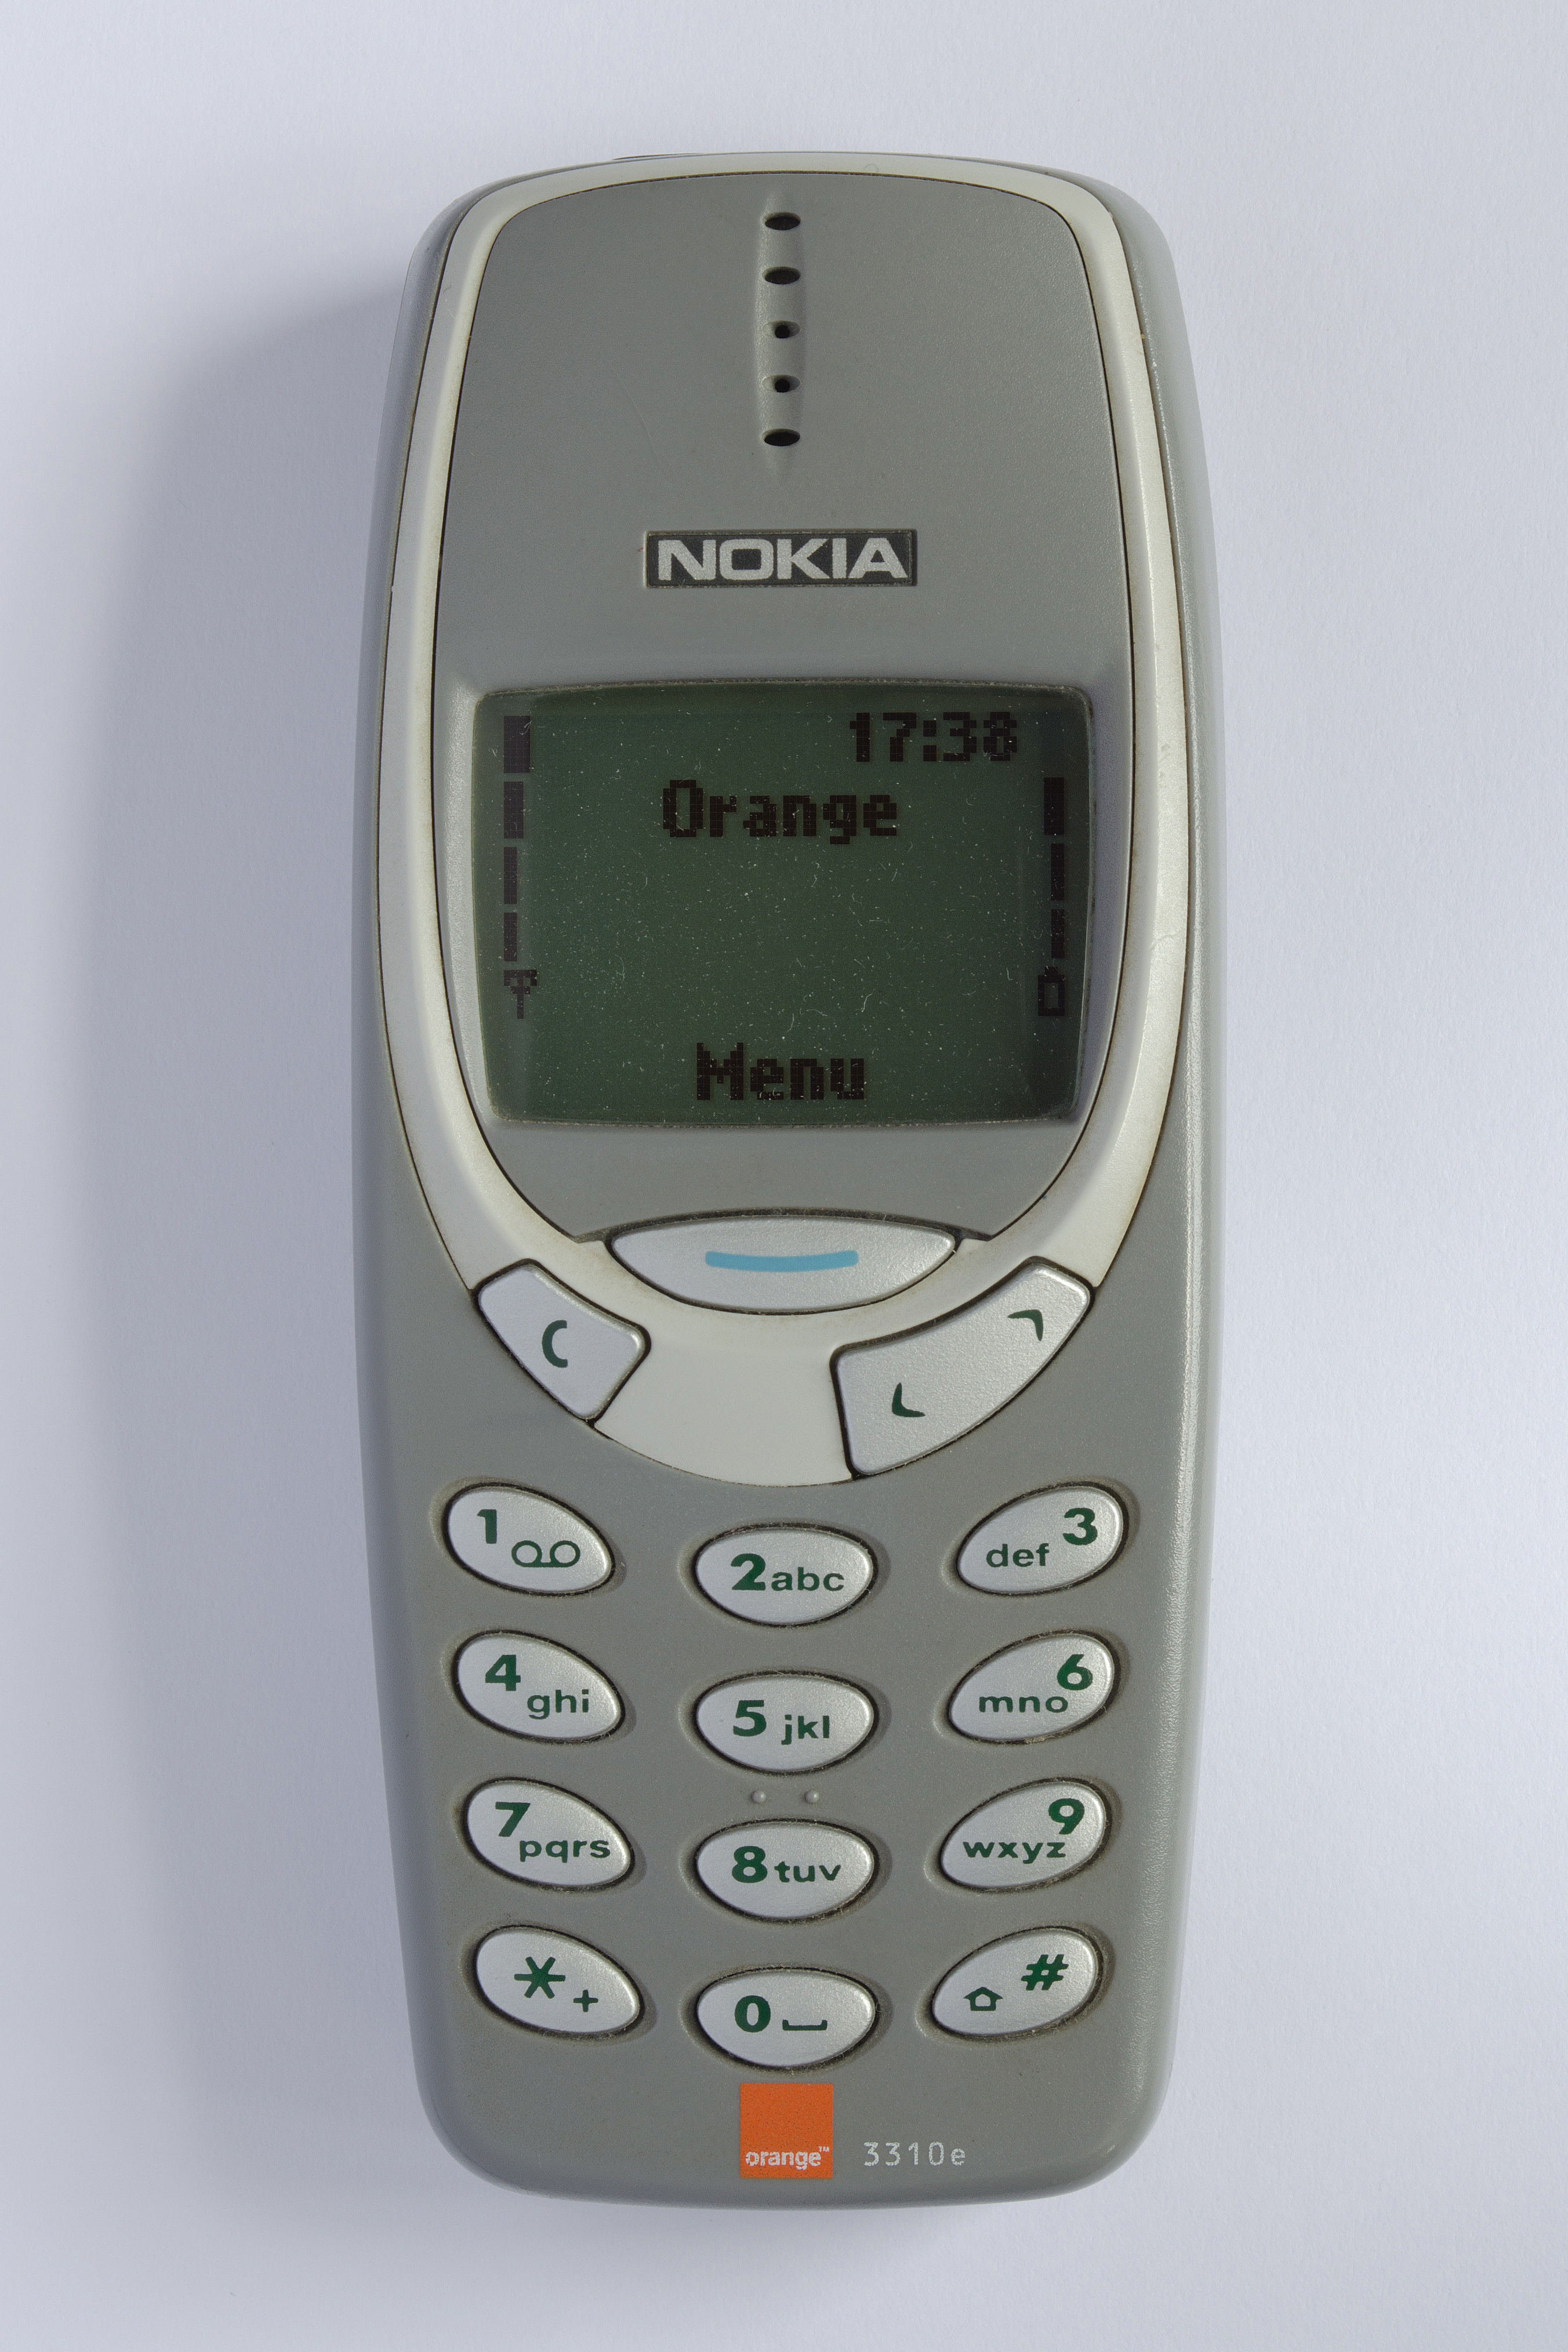 File:Nokia 3310 grey front.jpg - Wikimedia Commons